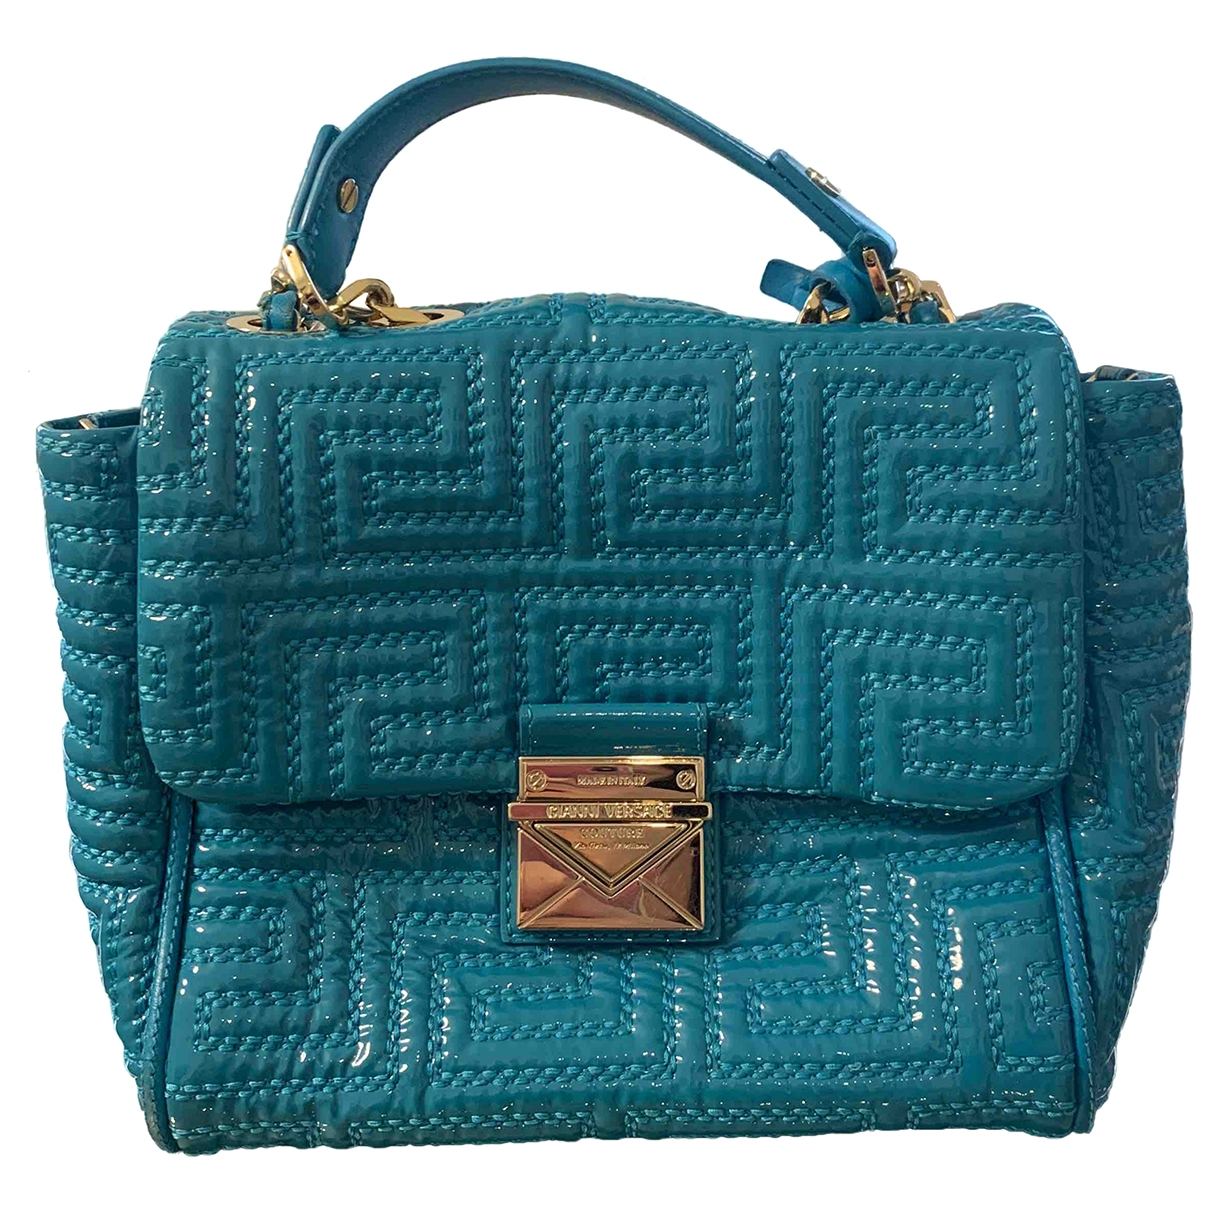 Gianni Versace \N Turquoise Patent leather handbag for Women \N